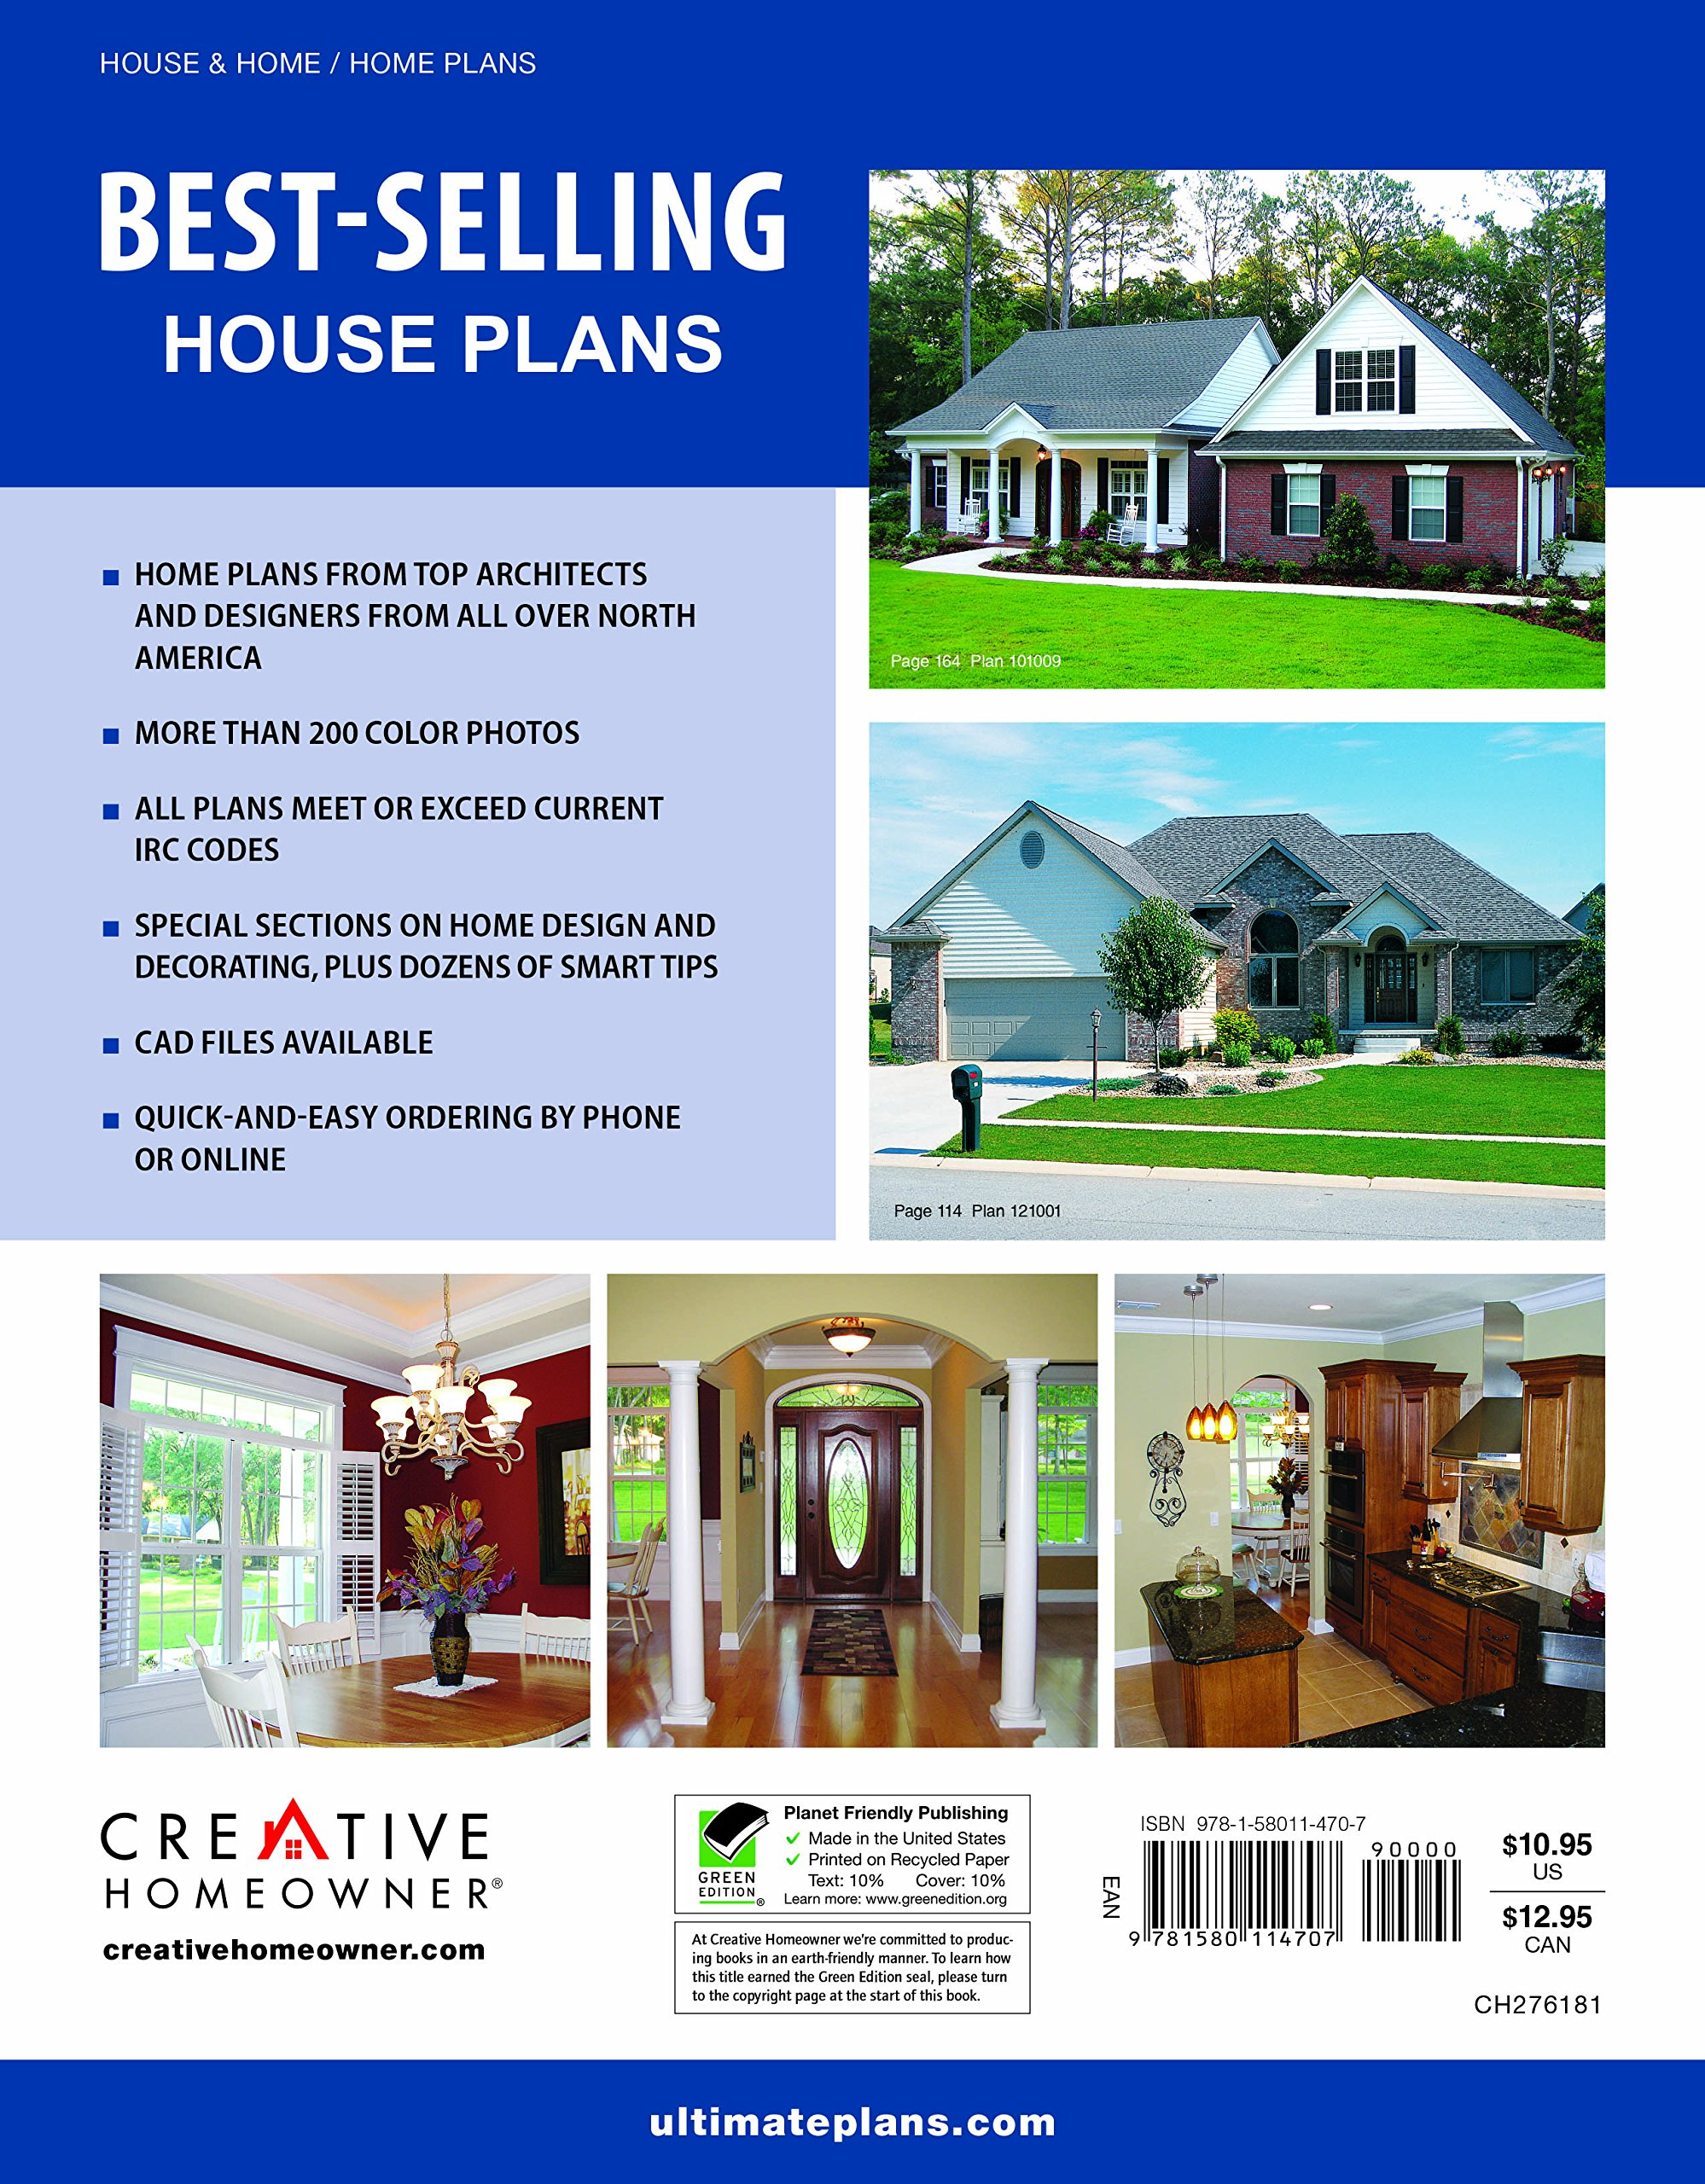 Home ing books homemade ftempo for Top selling house plans